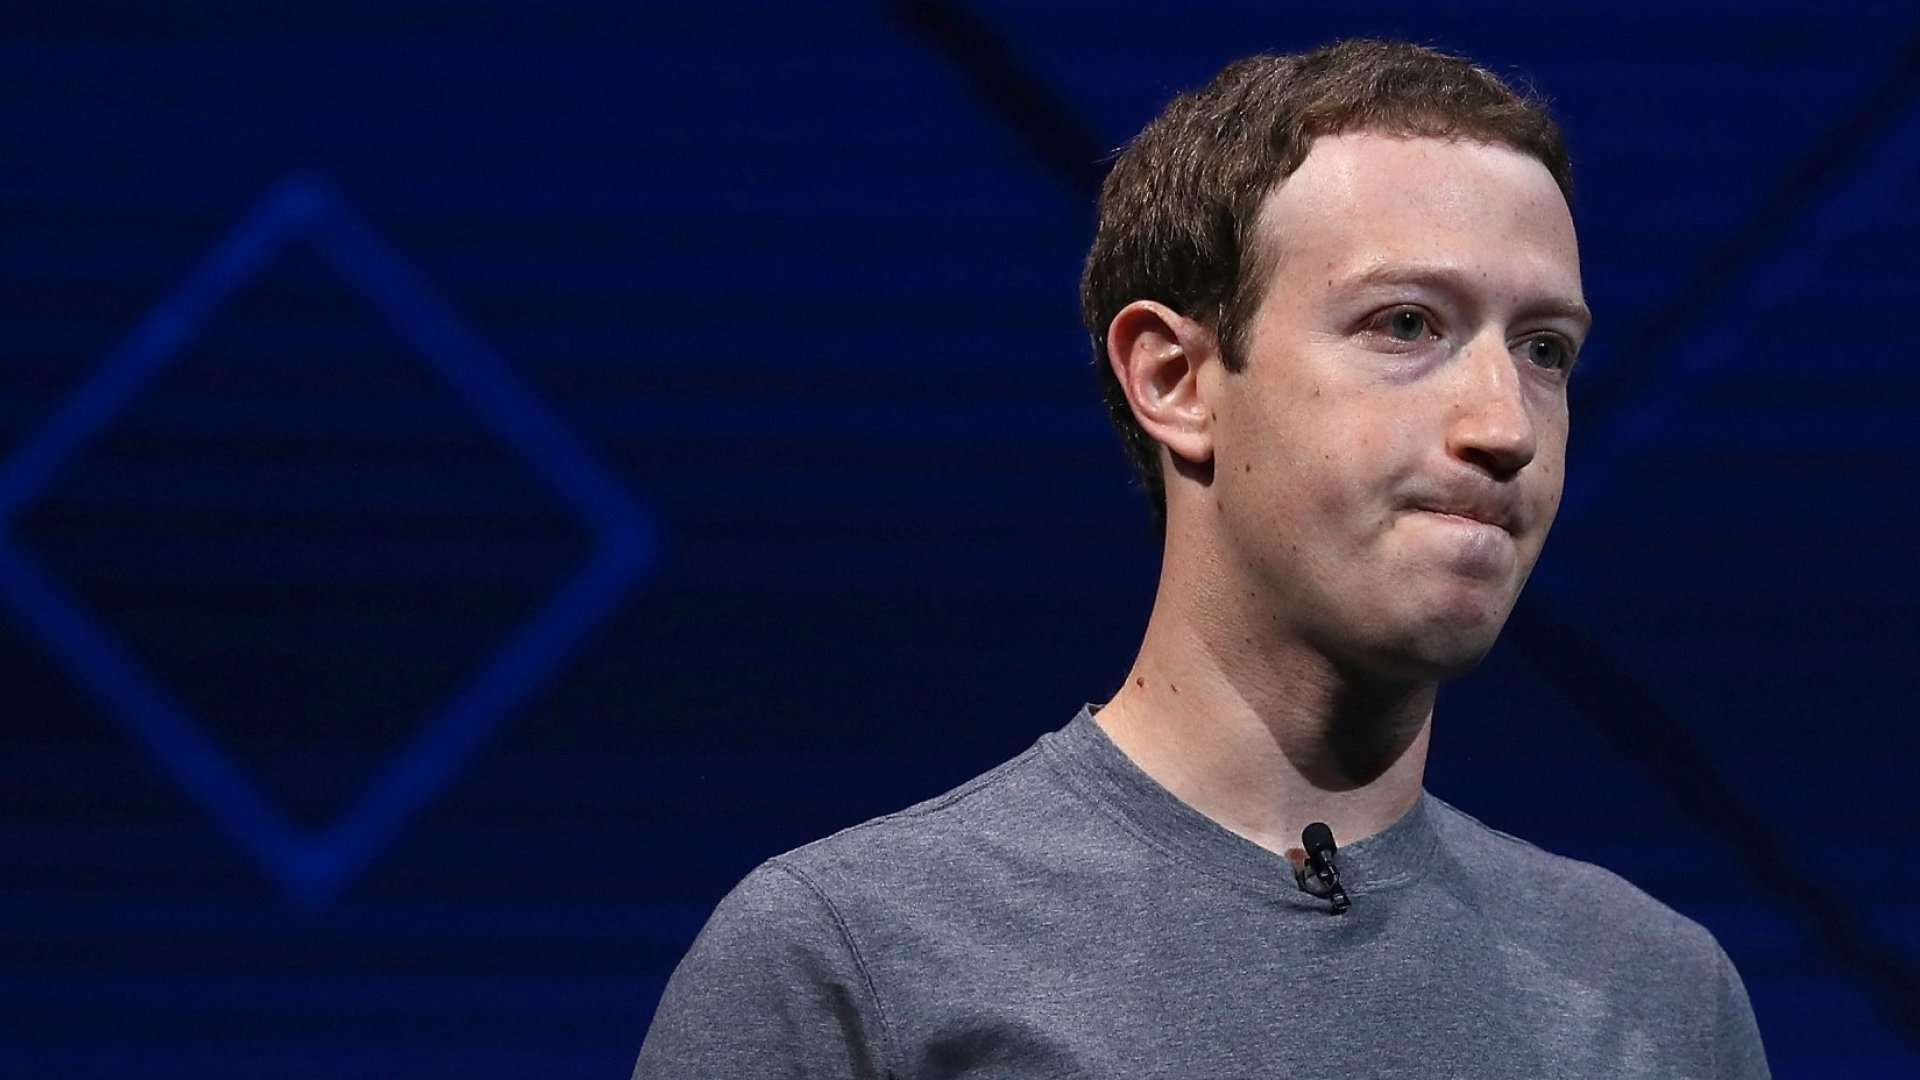 Facebook Reportedly Is Under Federal Investigation for Its Data Sharing Policies